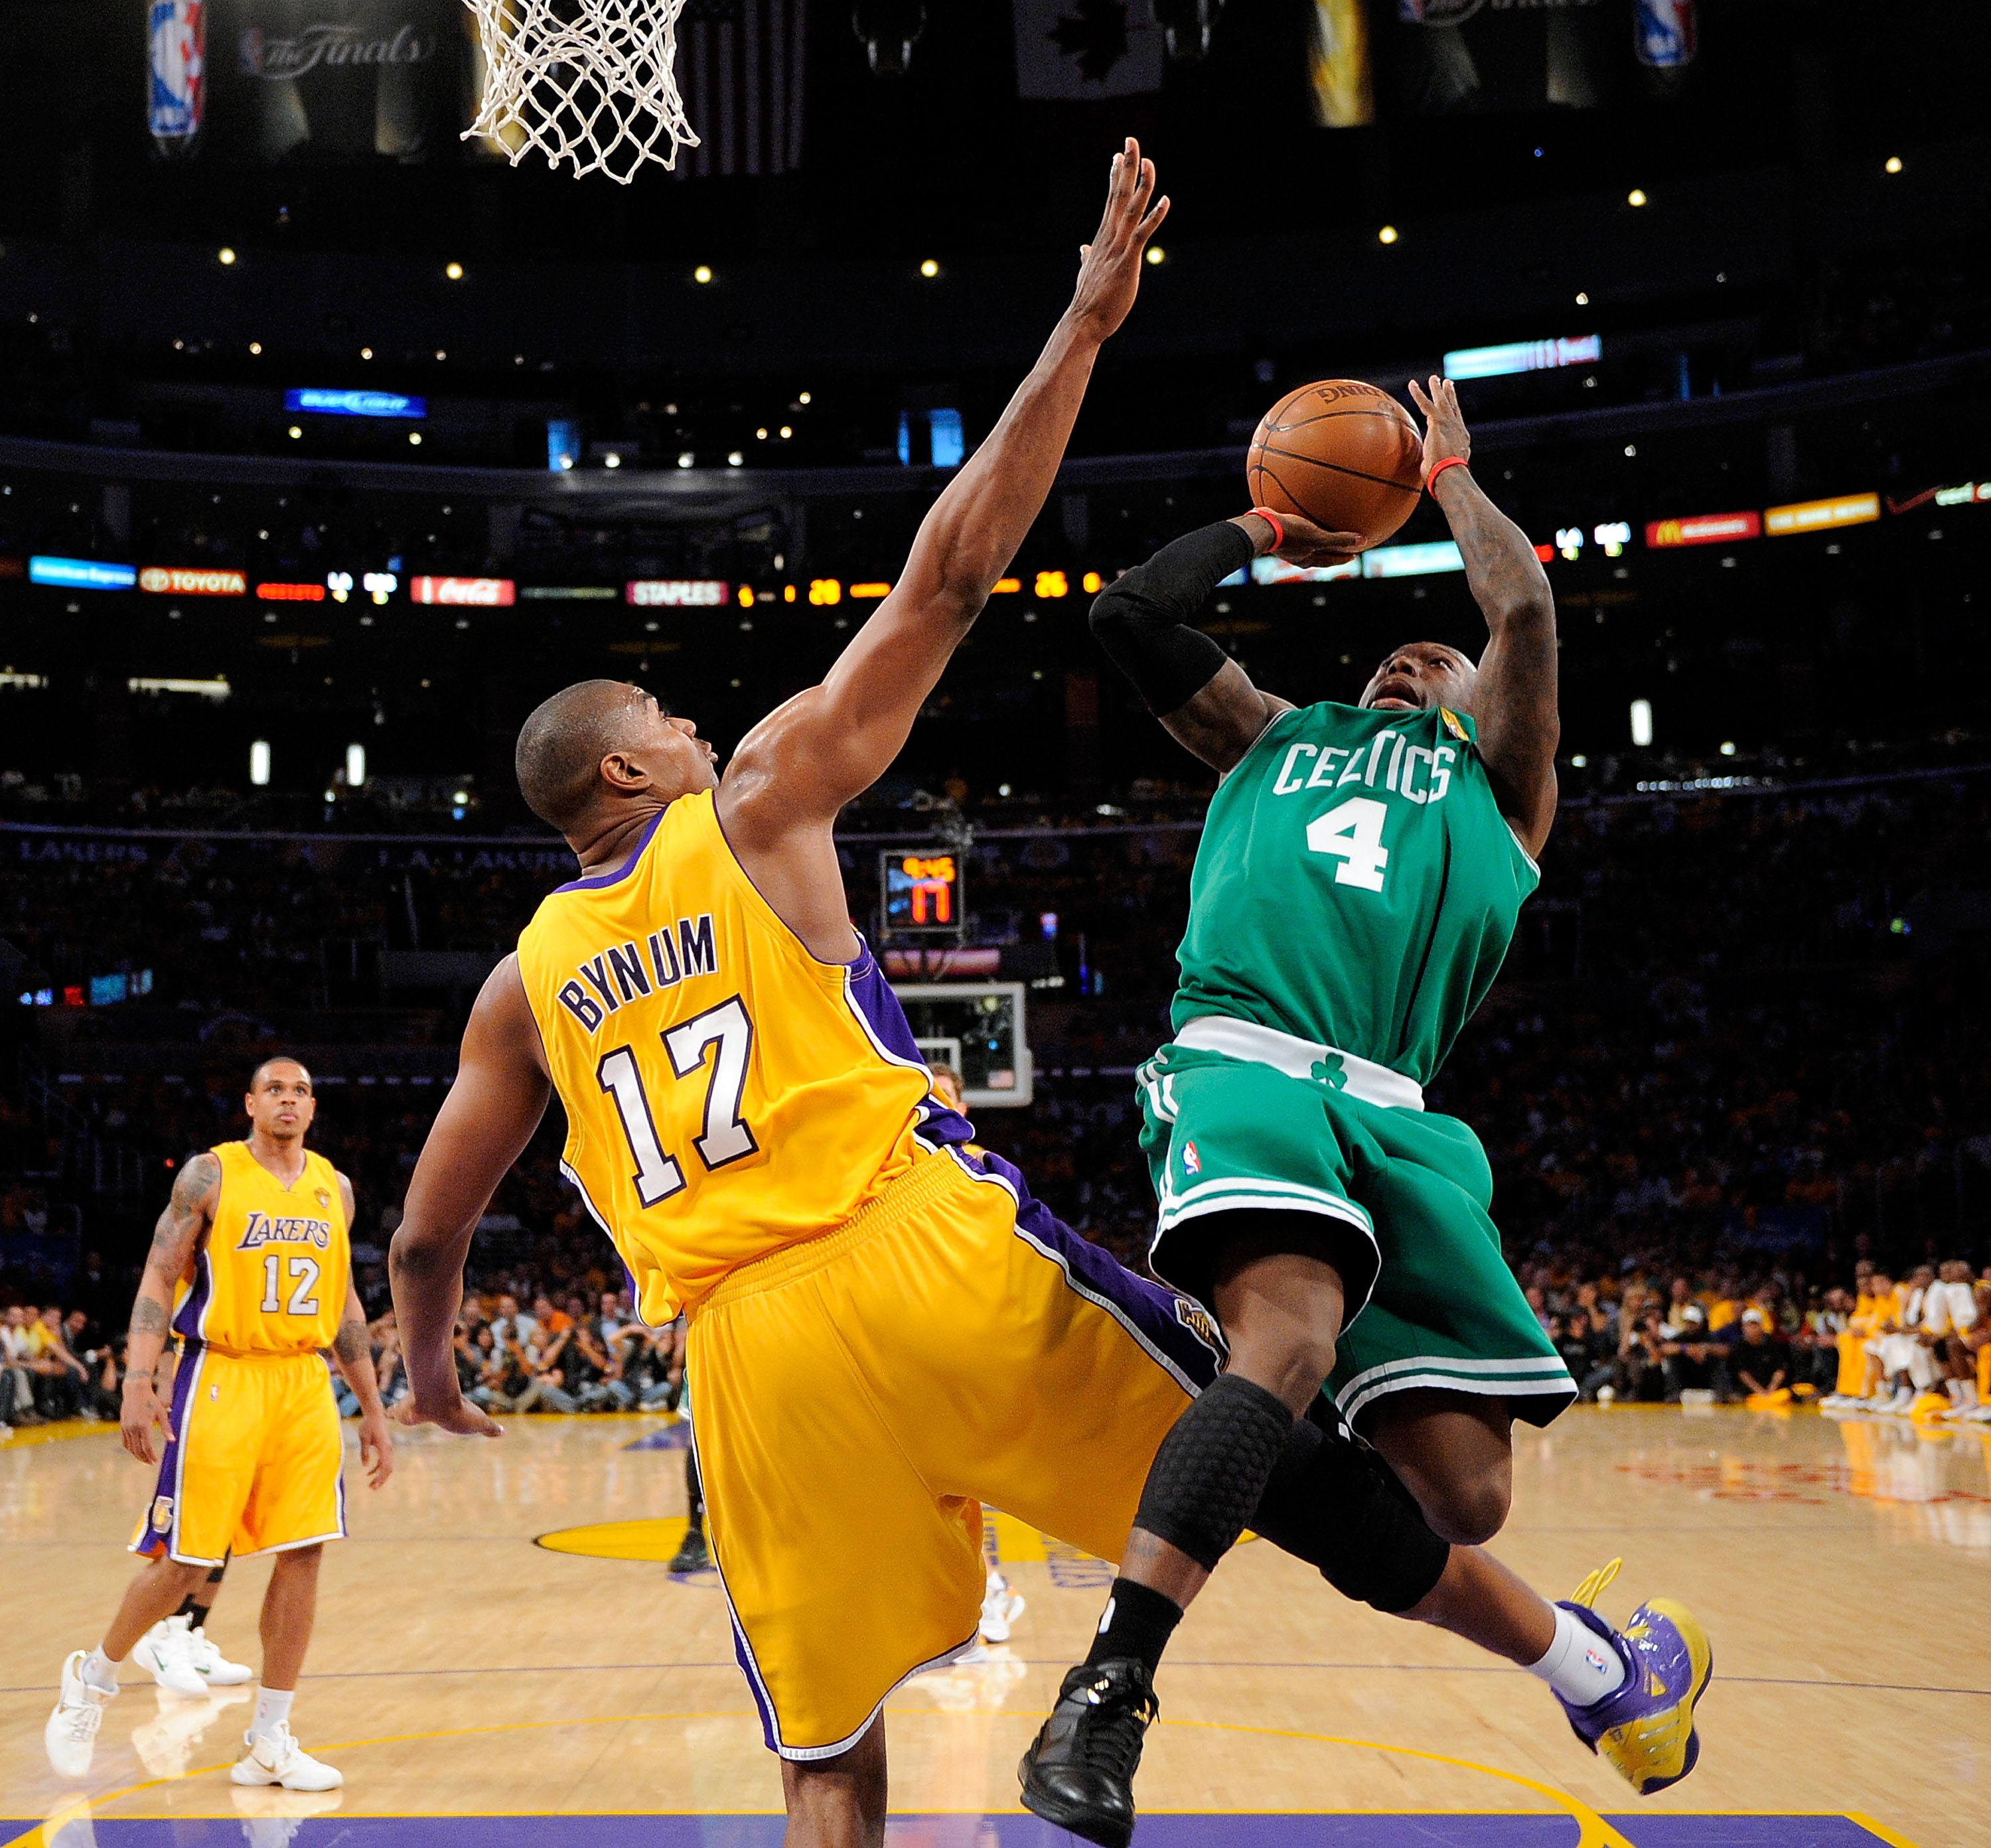 LOS ANGELES - JUNE 3:  Nate Robinson #4 of the Boston Celtics puts a shot up over Andrew Bynum #17 of the Los Angeles Lakers in Game One of the 2010 NBA Finals at Staples Center on June 3, 2010 in Los Angeles, California.  NOTE TO USER: User expressly ack